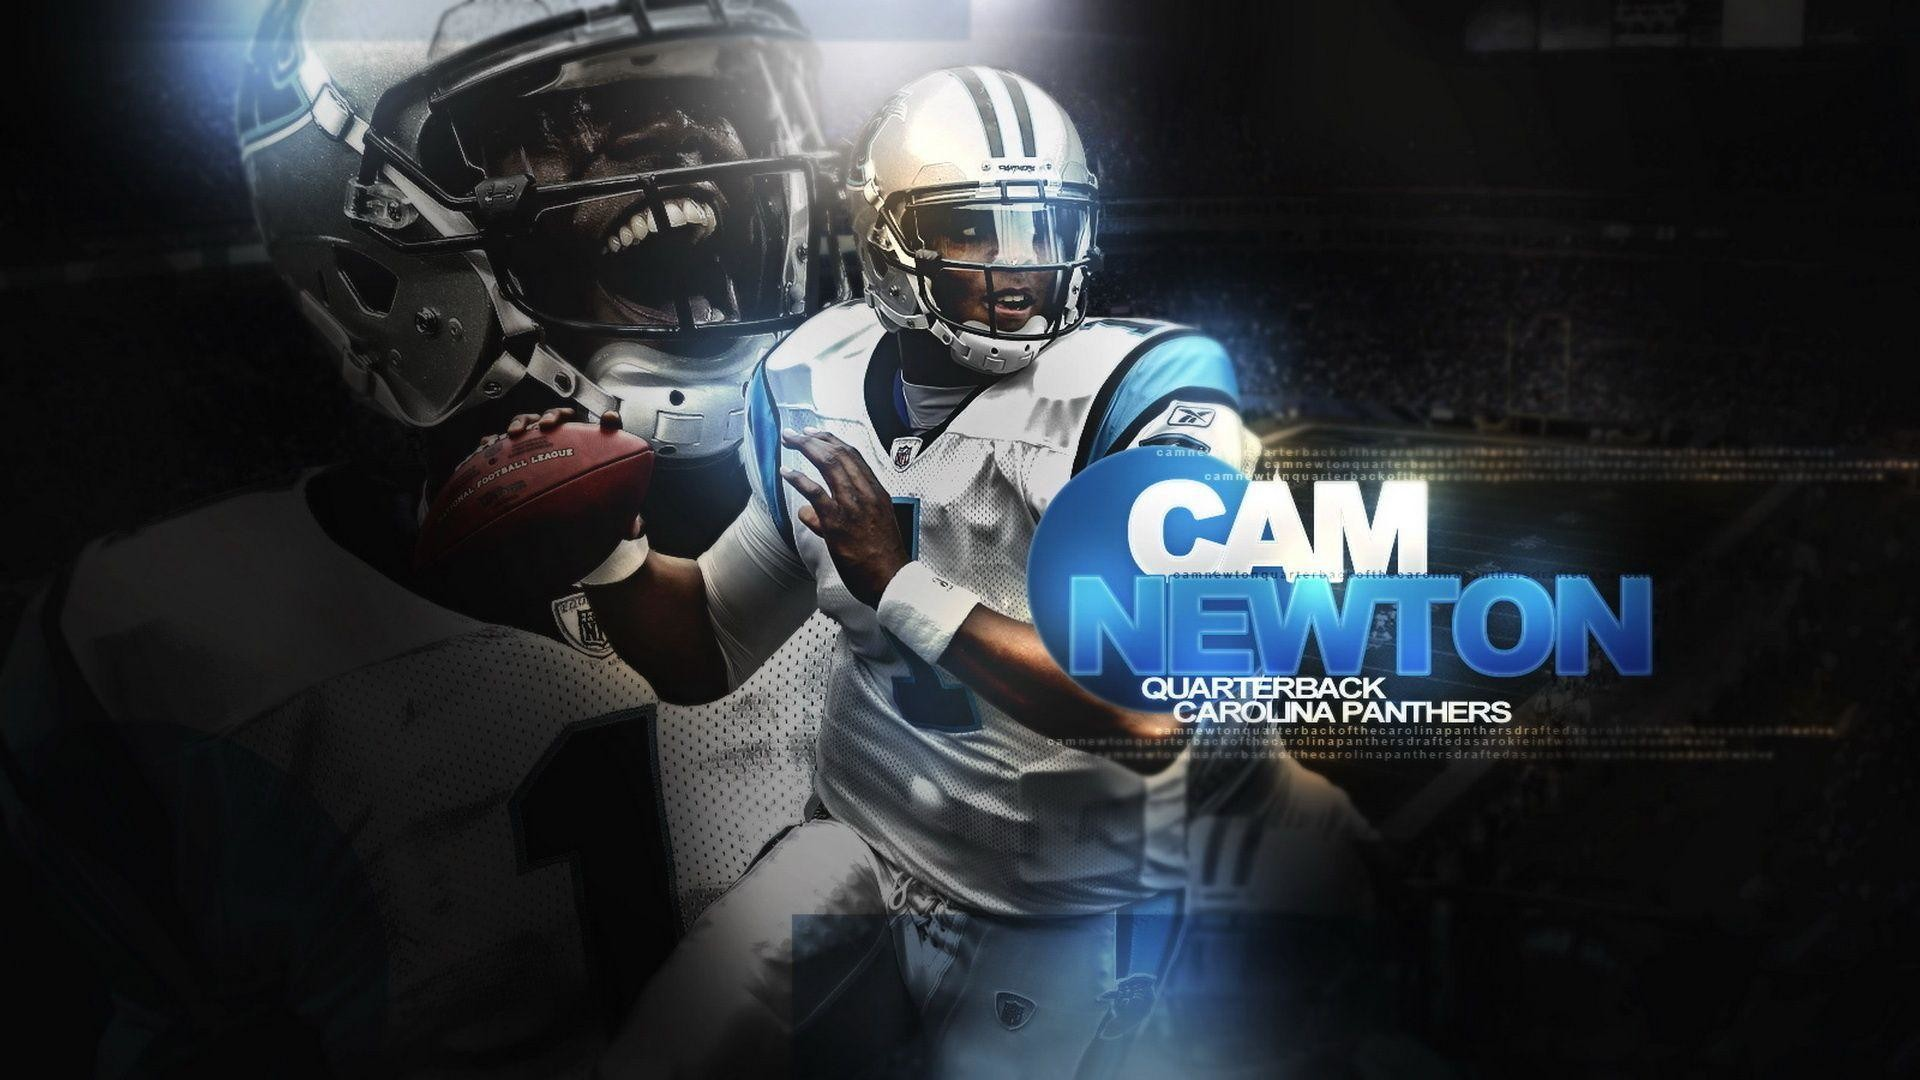 Cam Newton Wallpapers HD   Wallpapers, Backgrounds, Images, Art ..